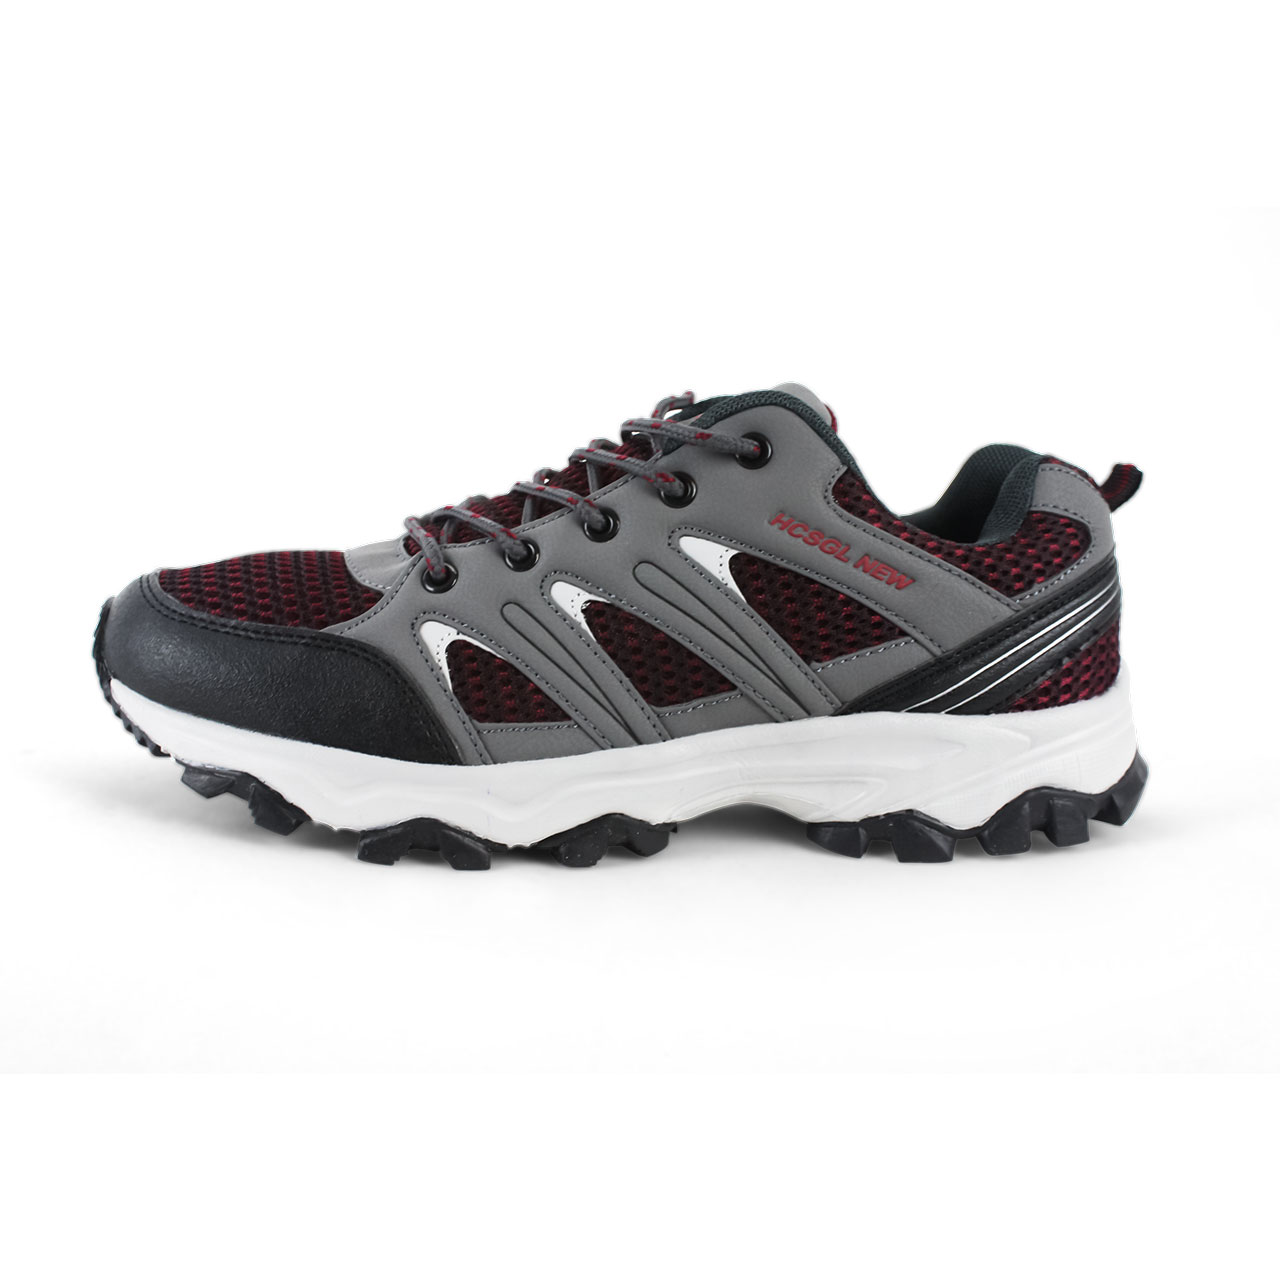 Men's Athletic Multisport Leather Tulle Outdoor Shoes